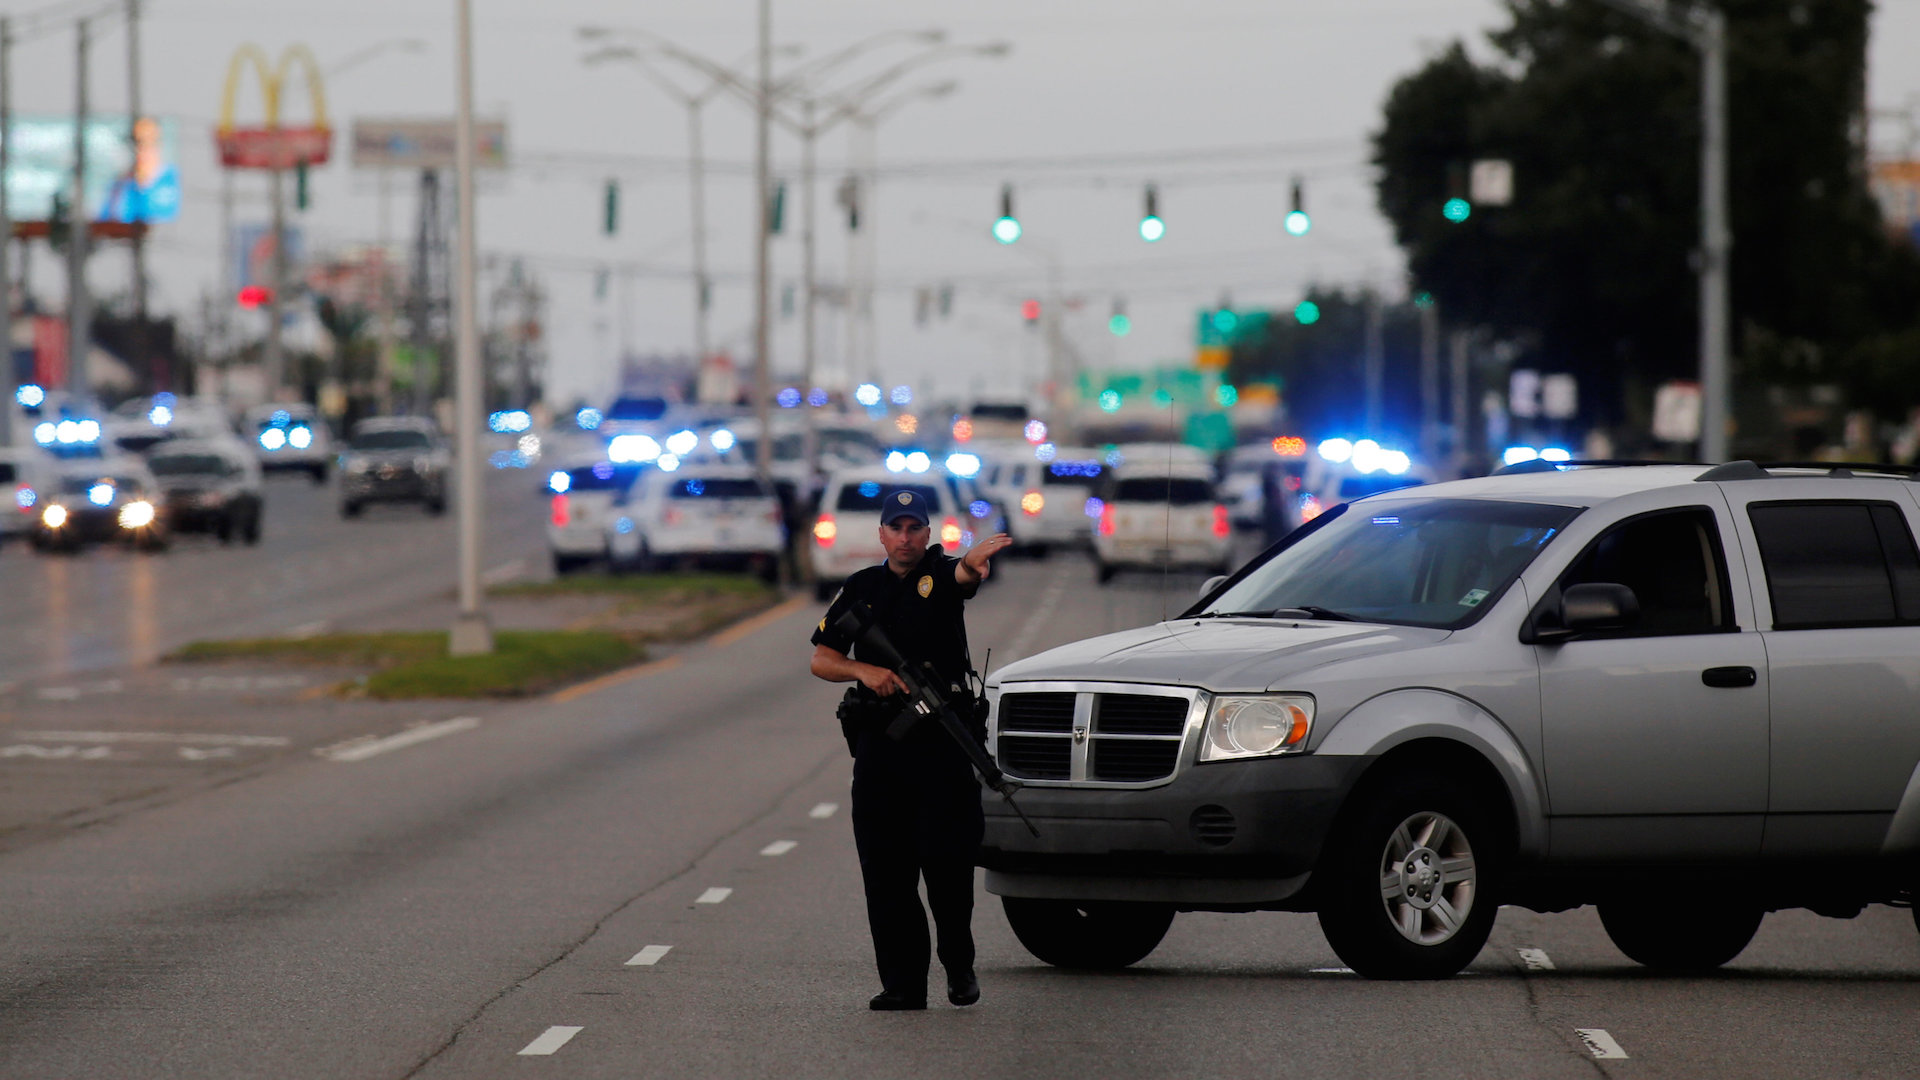 3 police officers killed, 3 wounded in Baton Rouge; gunman dead